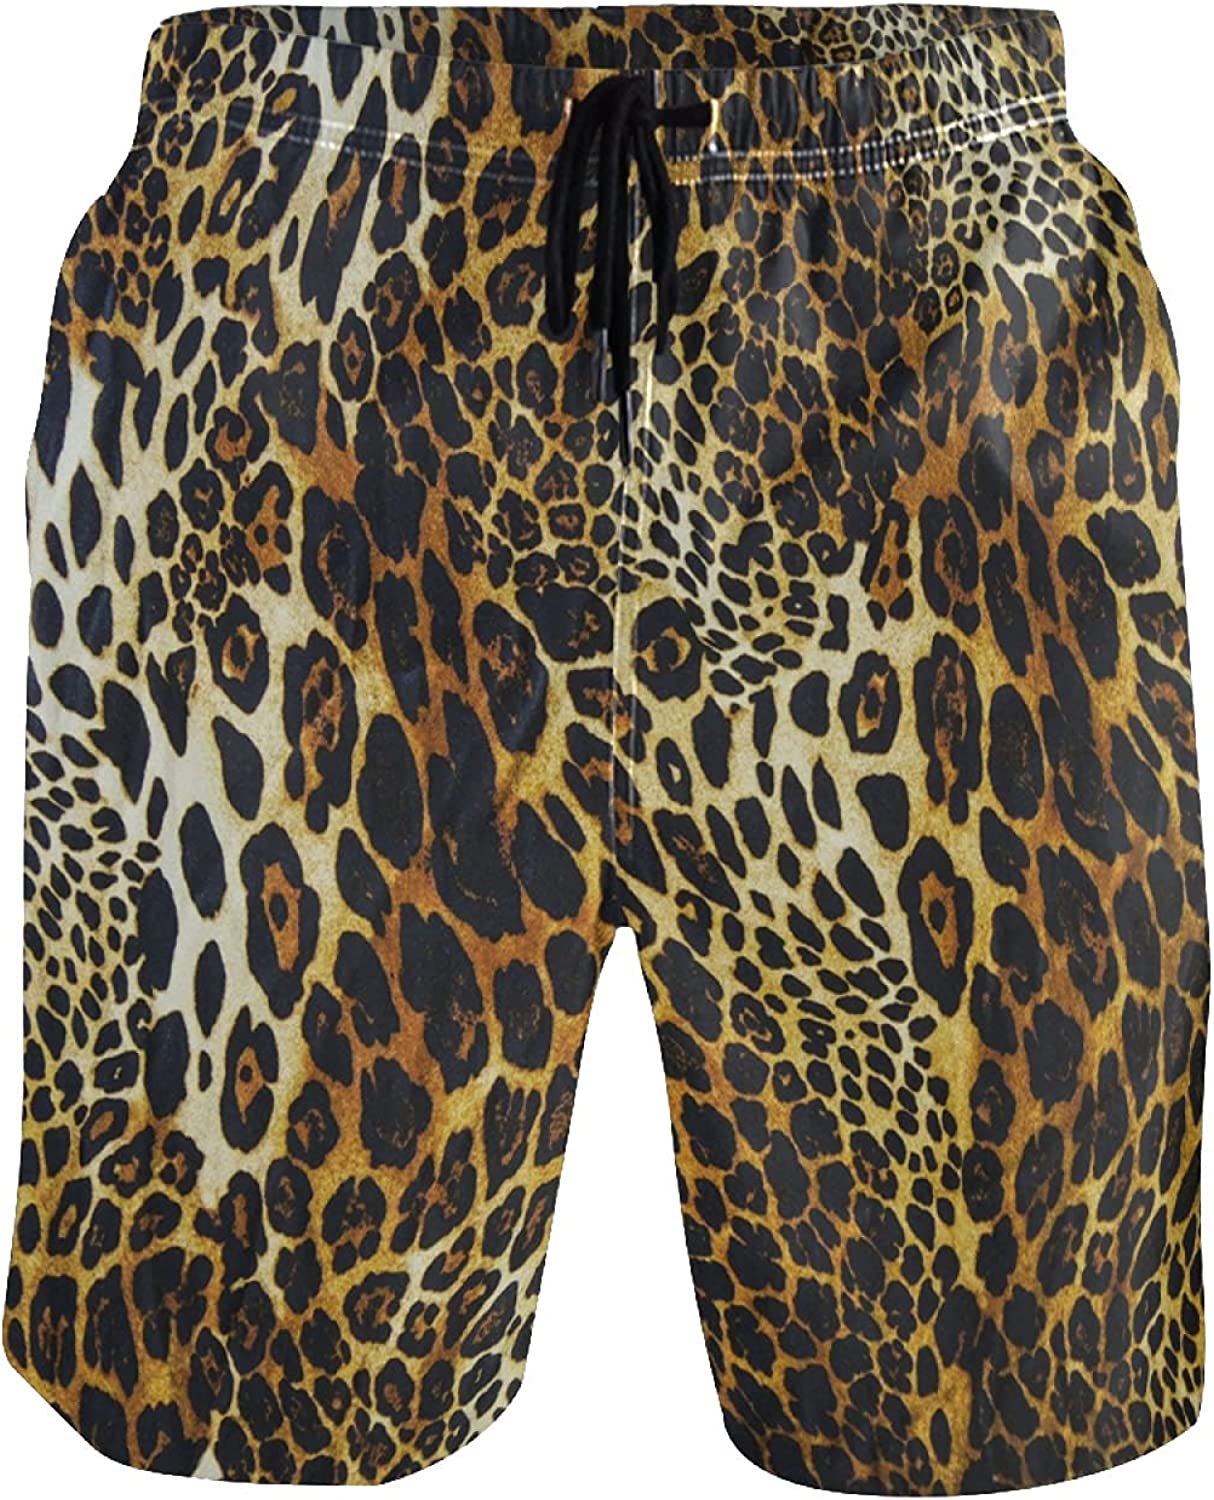 Spring Moon Clearance SALE Credence Limited time Colorful Leopard Men Shorts Board Beach and Pockets